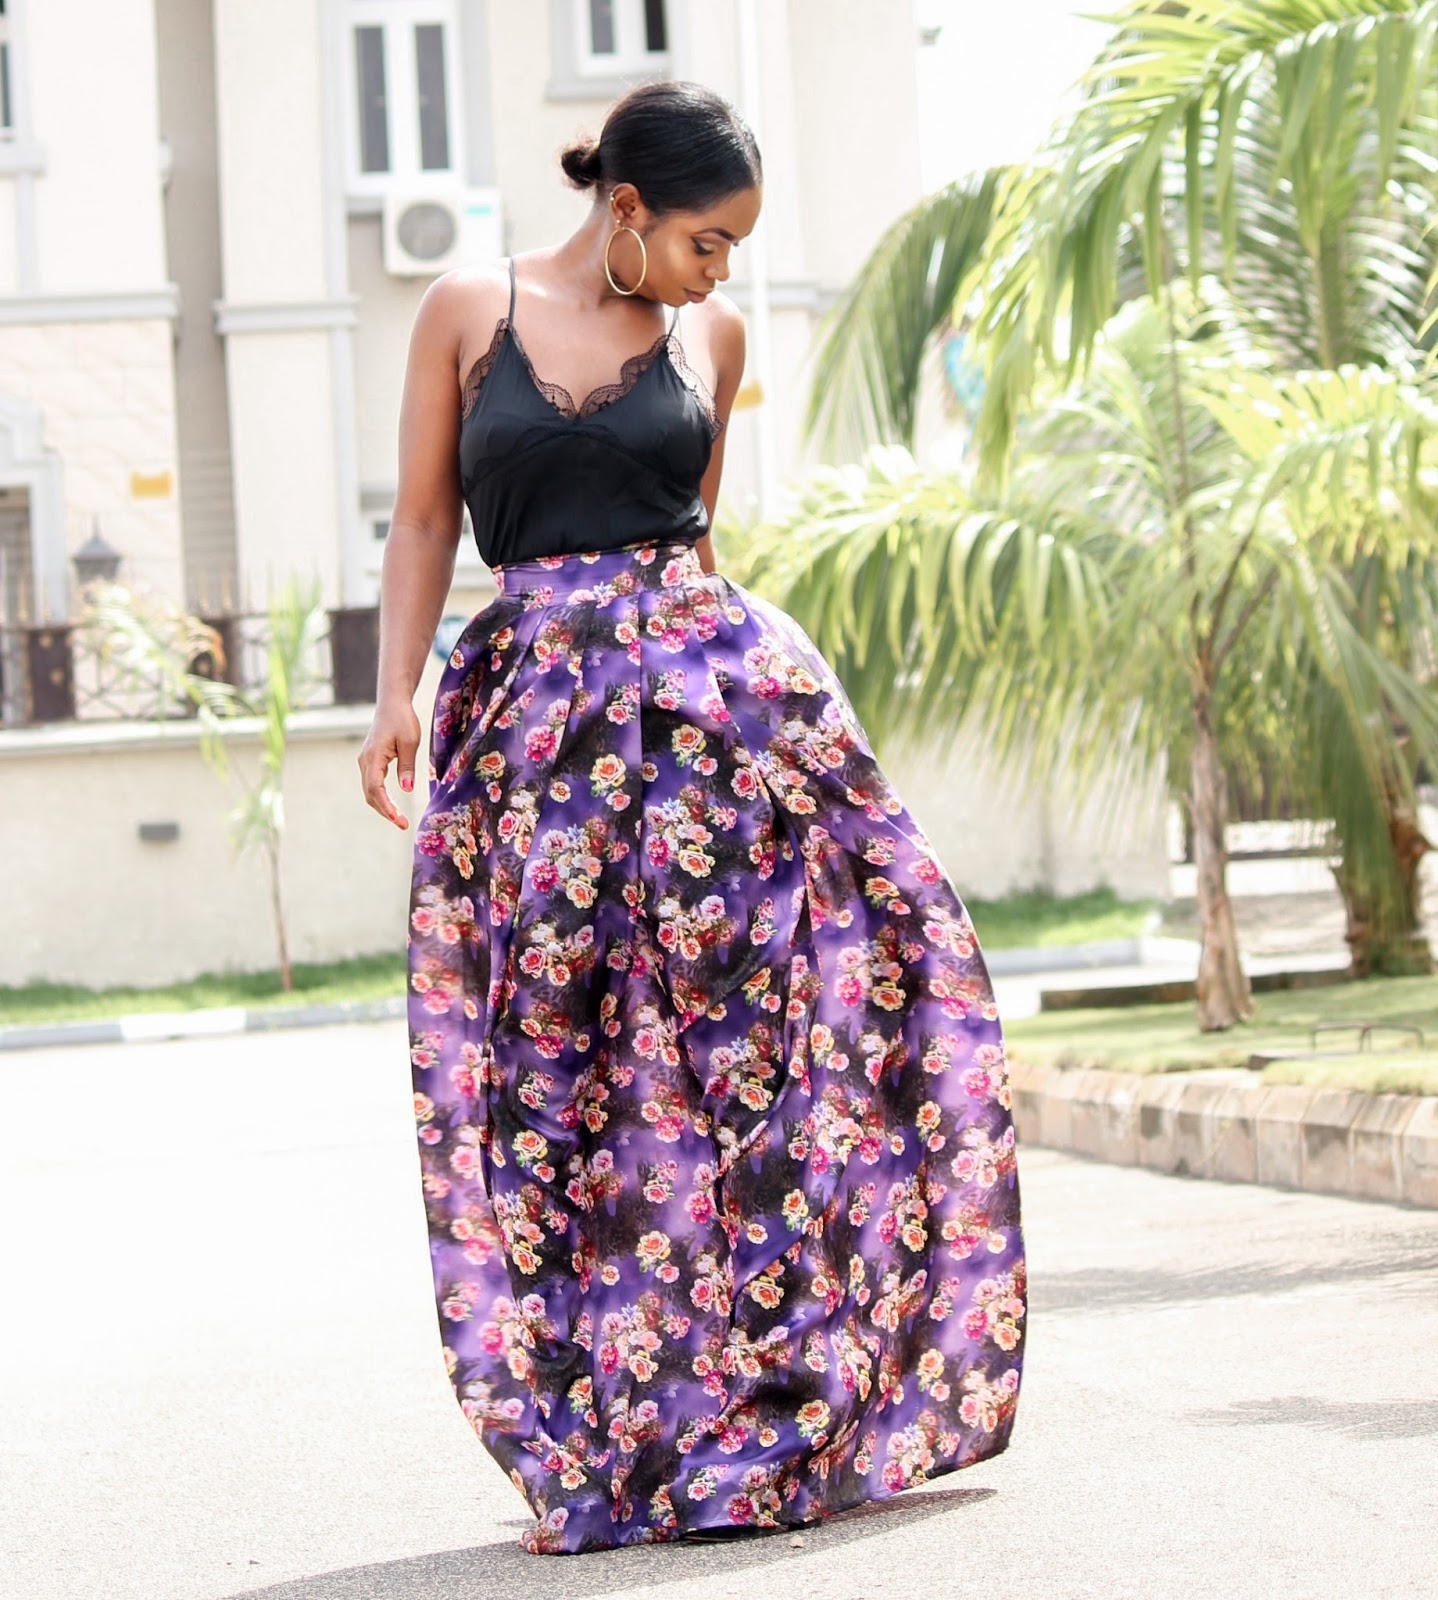 PURPLE FLORAL - Purple Floral Skirt by Porshher